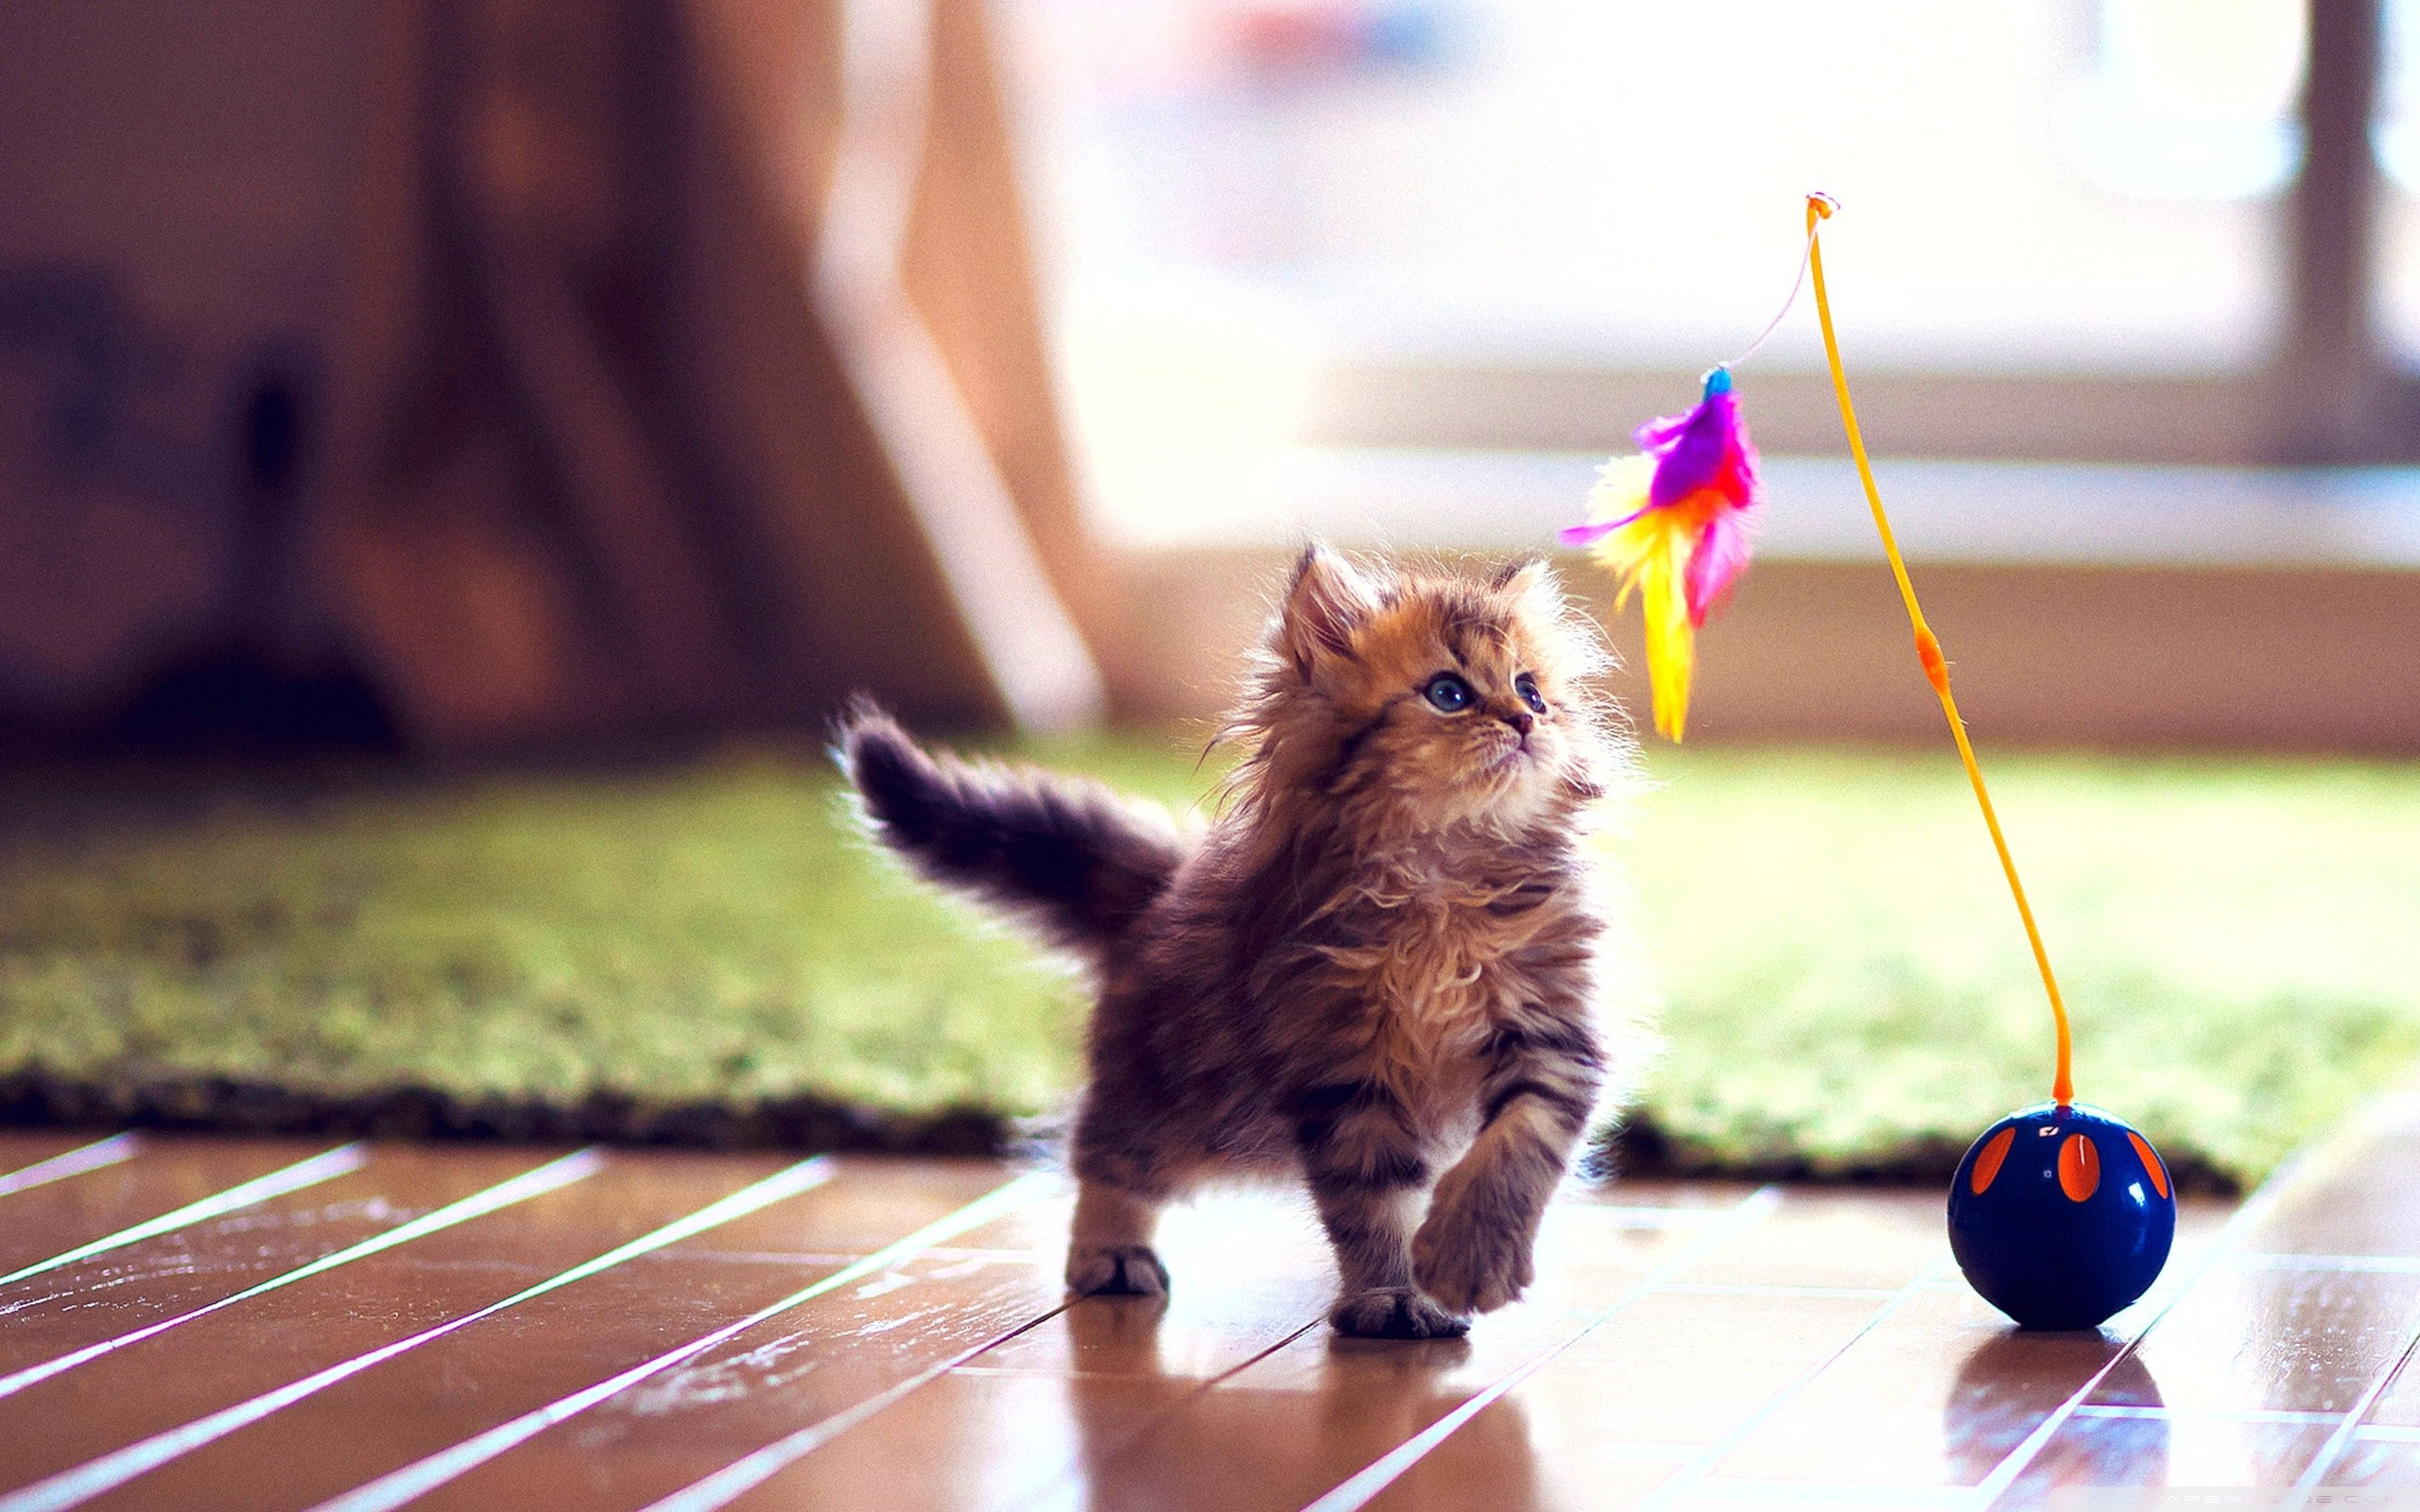 1920x1080 Beautiful Kittens wallpaper,Beautiful Kittens image,Beautiful Kittens hd